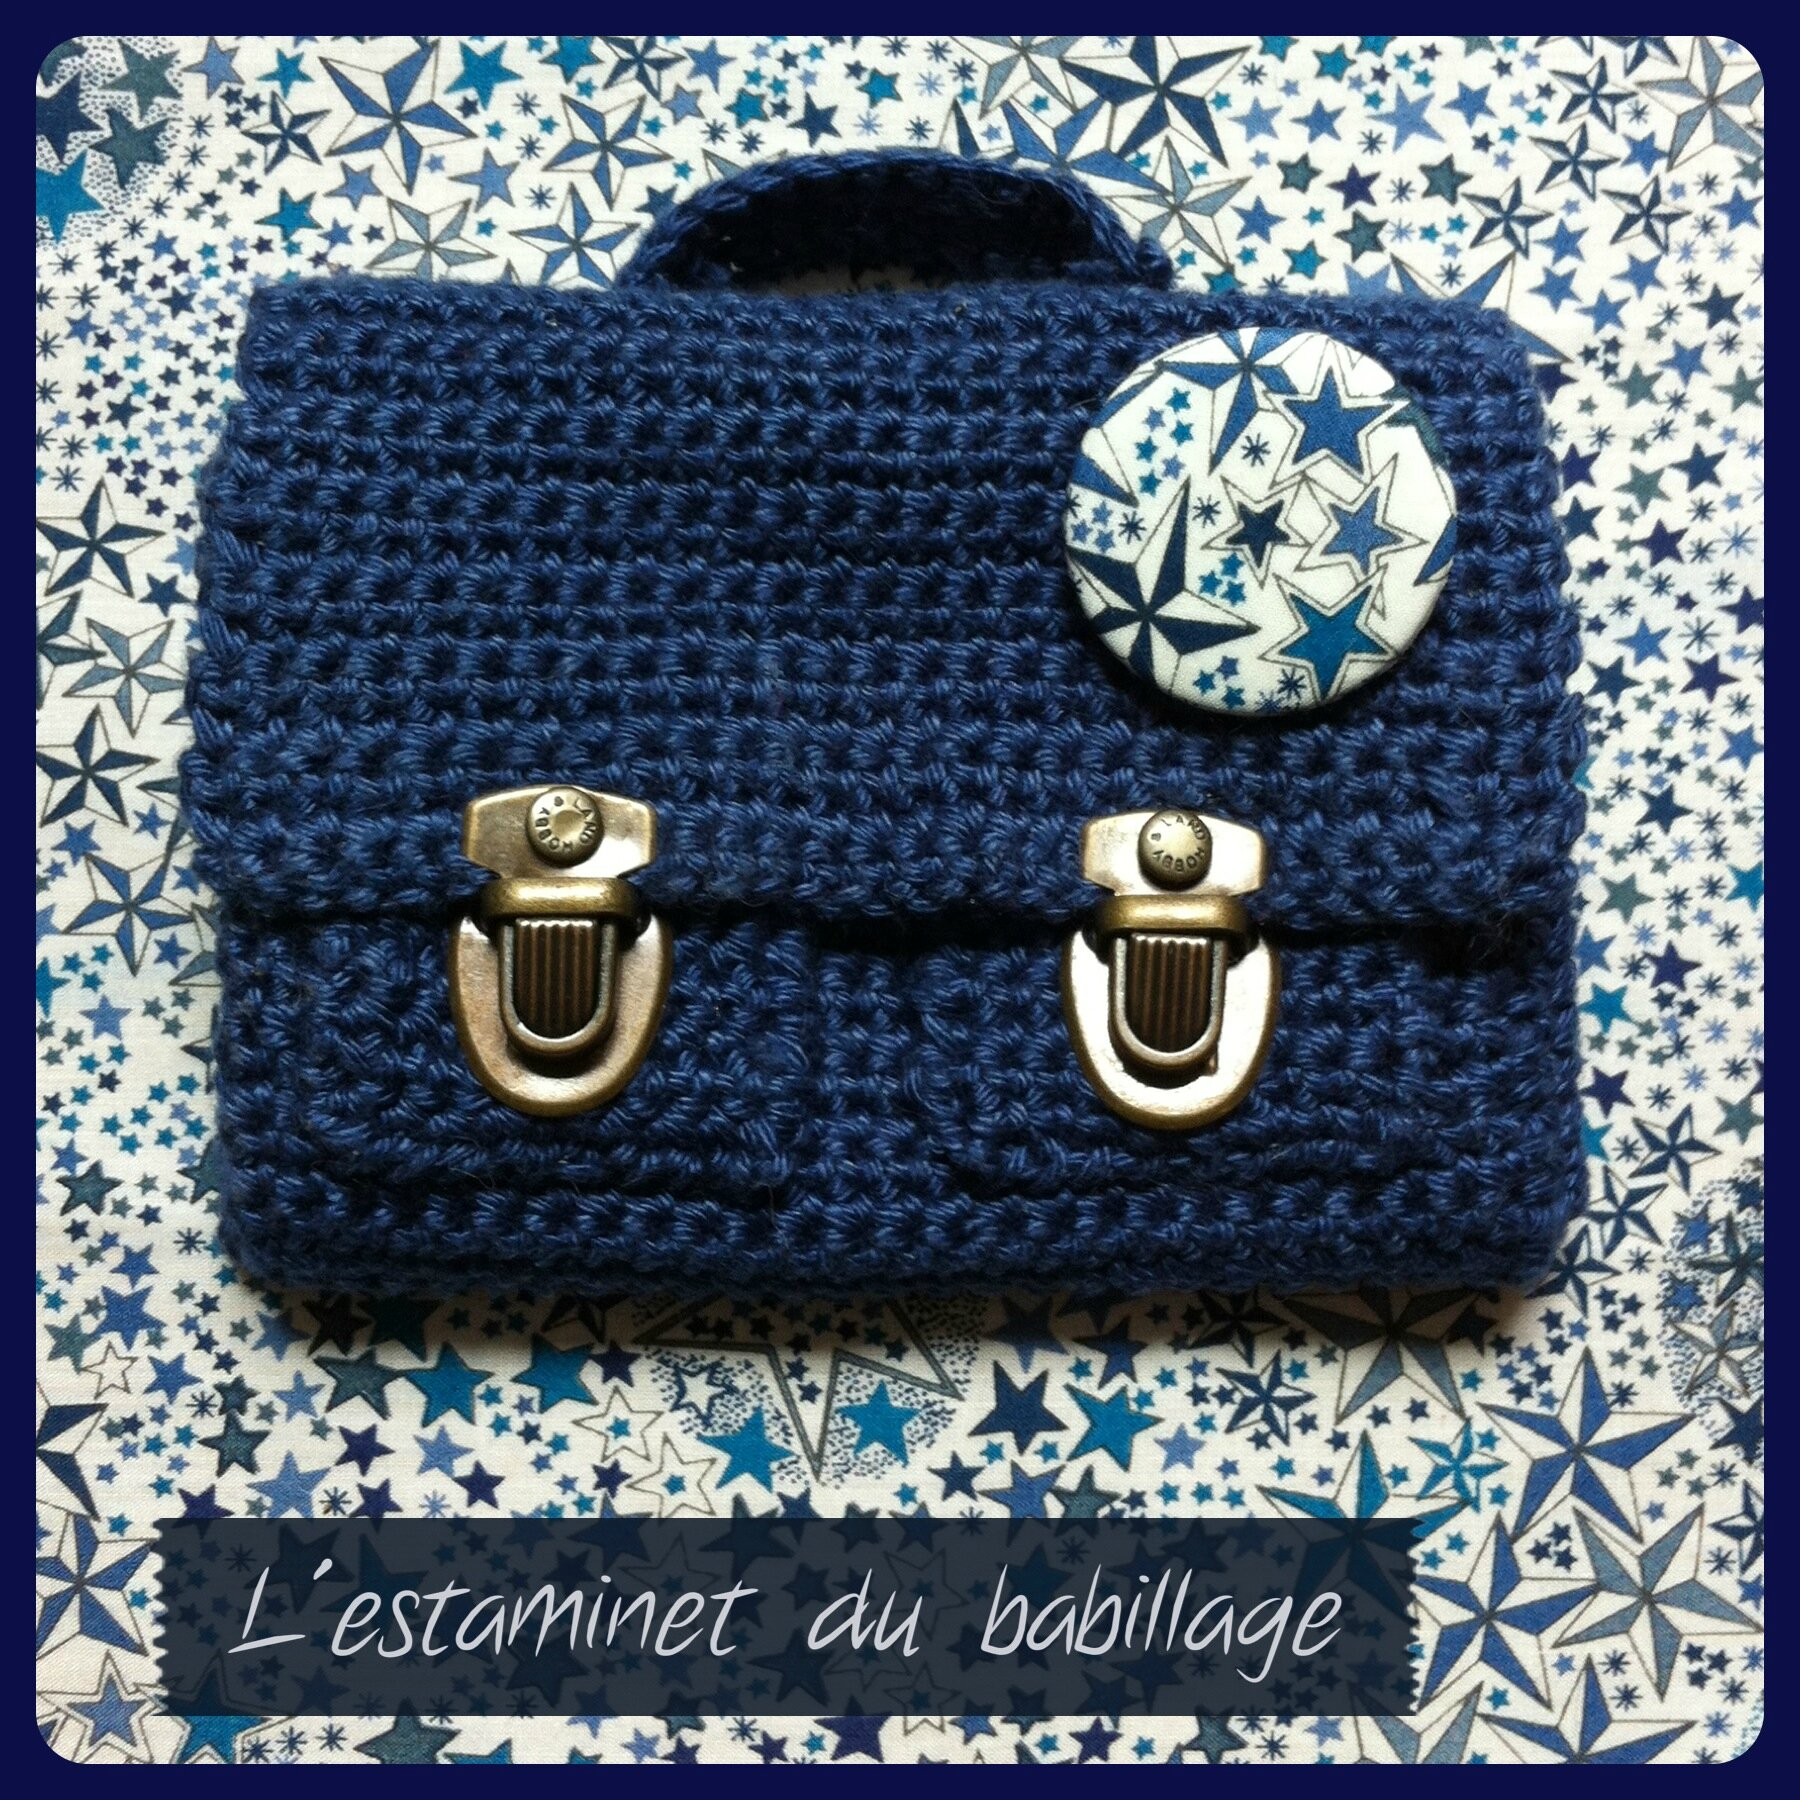 Mini cartable au crochet